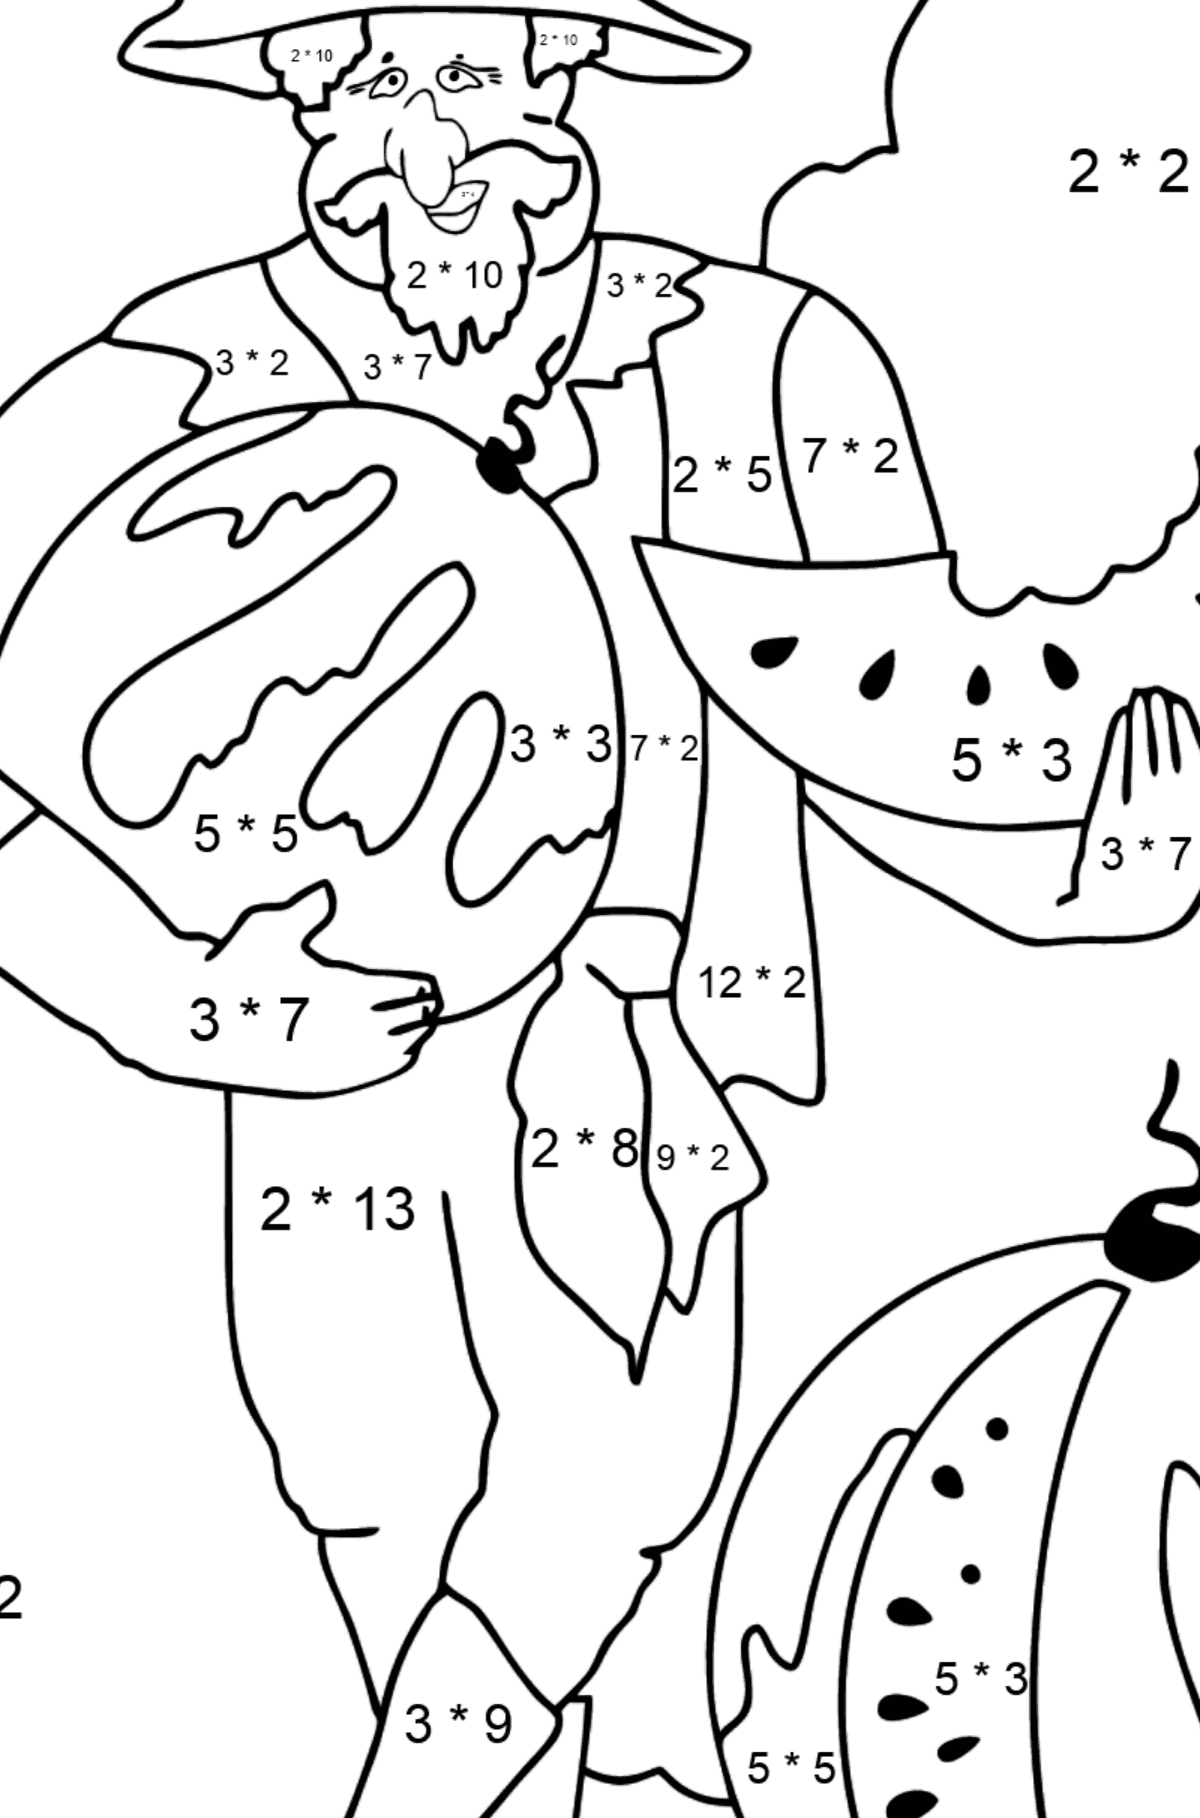 Coloring Page - A Pirate with a Watermelon - Math Coloring - Multiplication for Kids